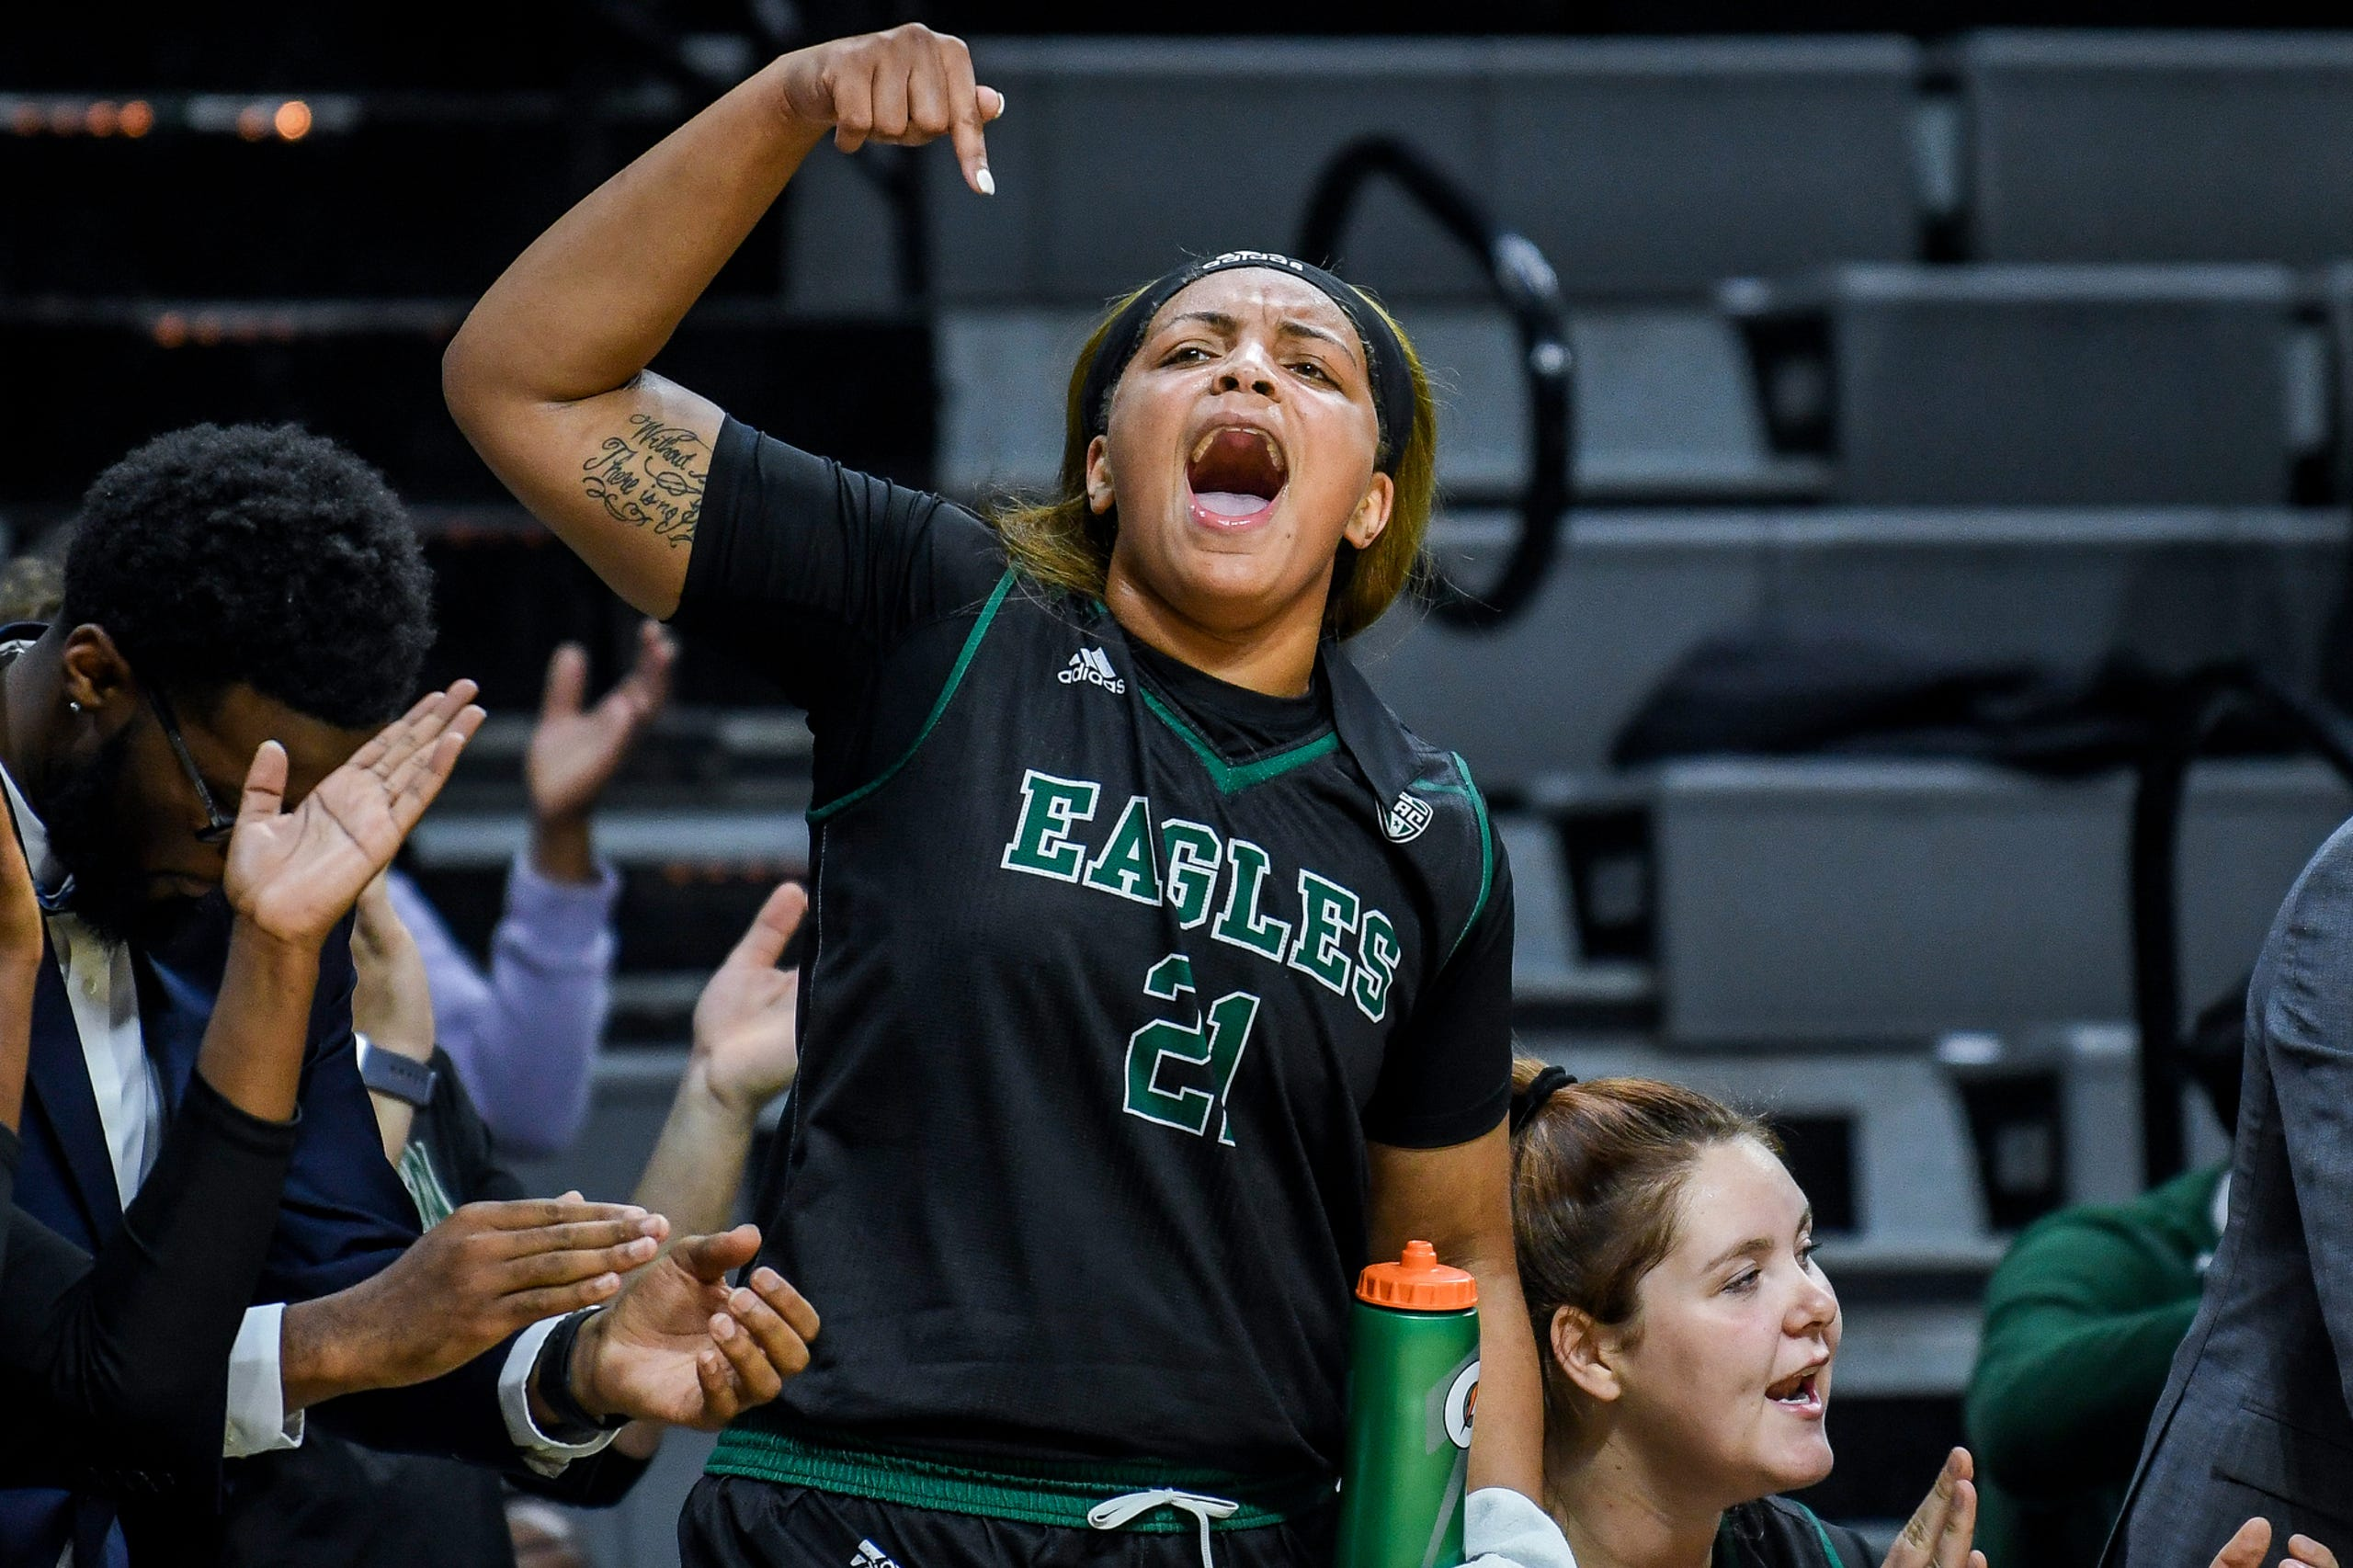 Eastern Michigan's Kiara Johnson celebrates on the bench during the second quarter on Tuesday, Nov. 5, 2019, at the Breslin Center in East Lansing.